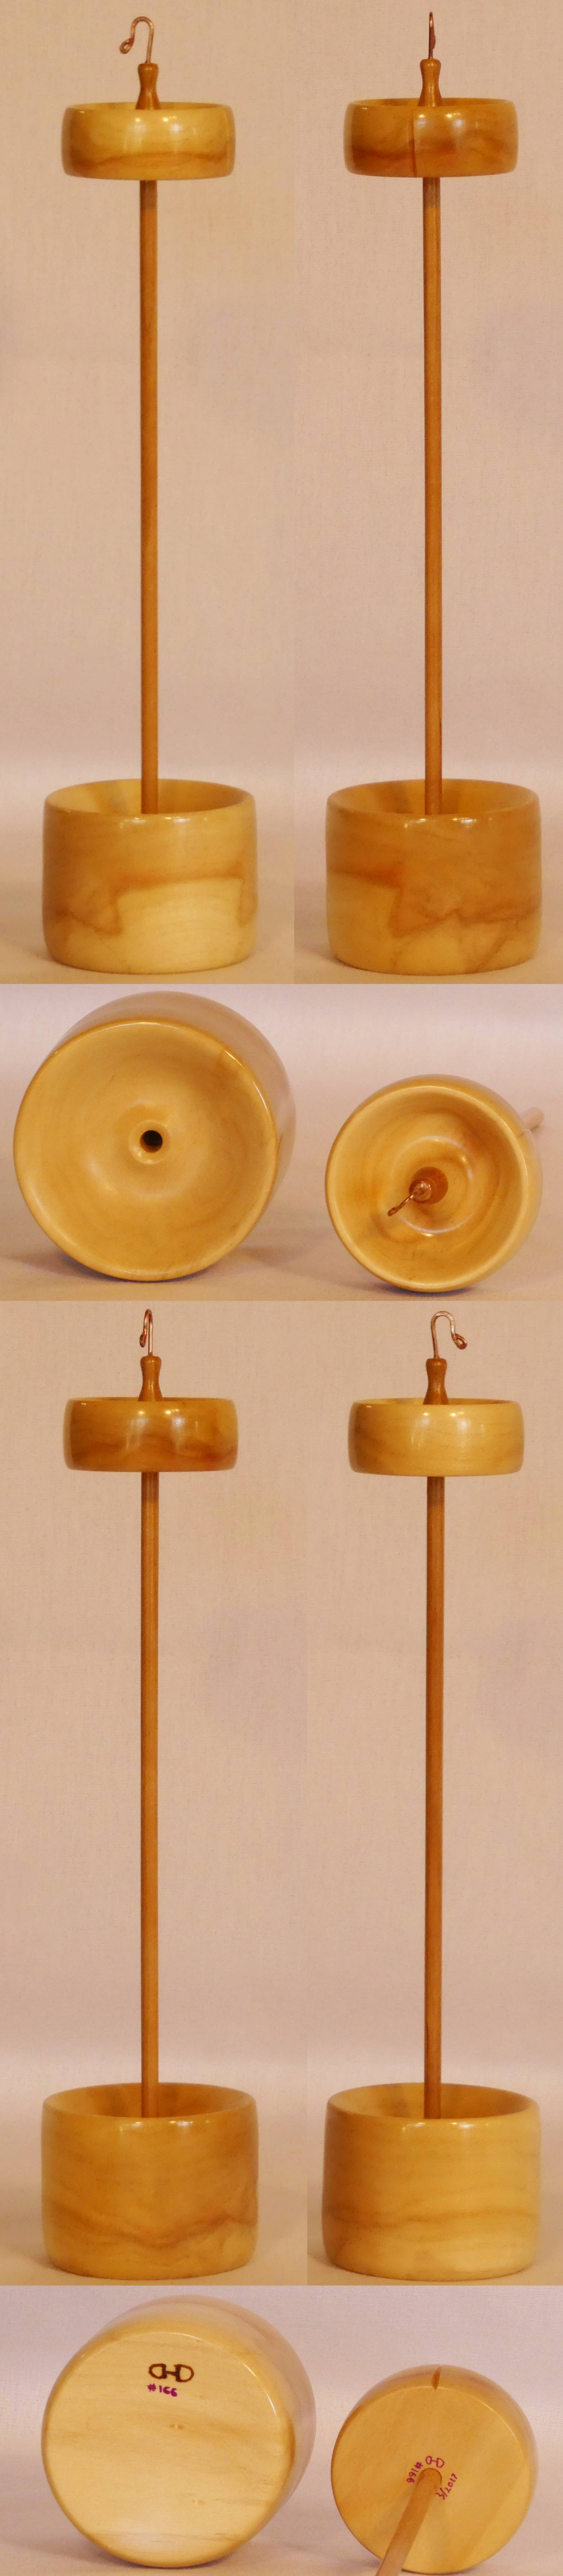 Handcrafted top whorl drop spindle and display stand, hand turned from Boxelder and Cherry wood by Cynthia D. Haney.